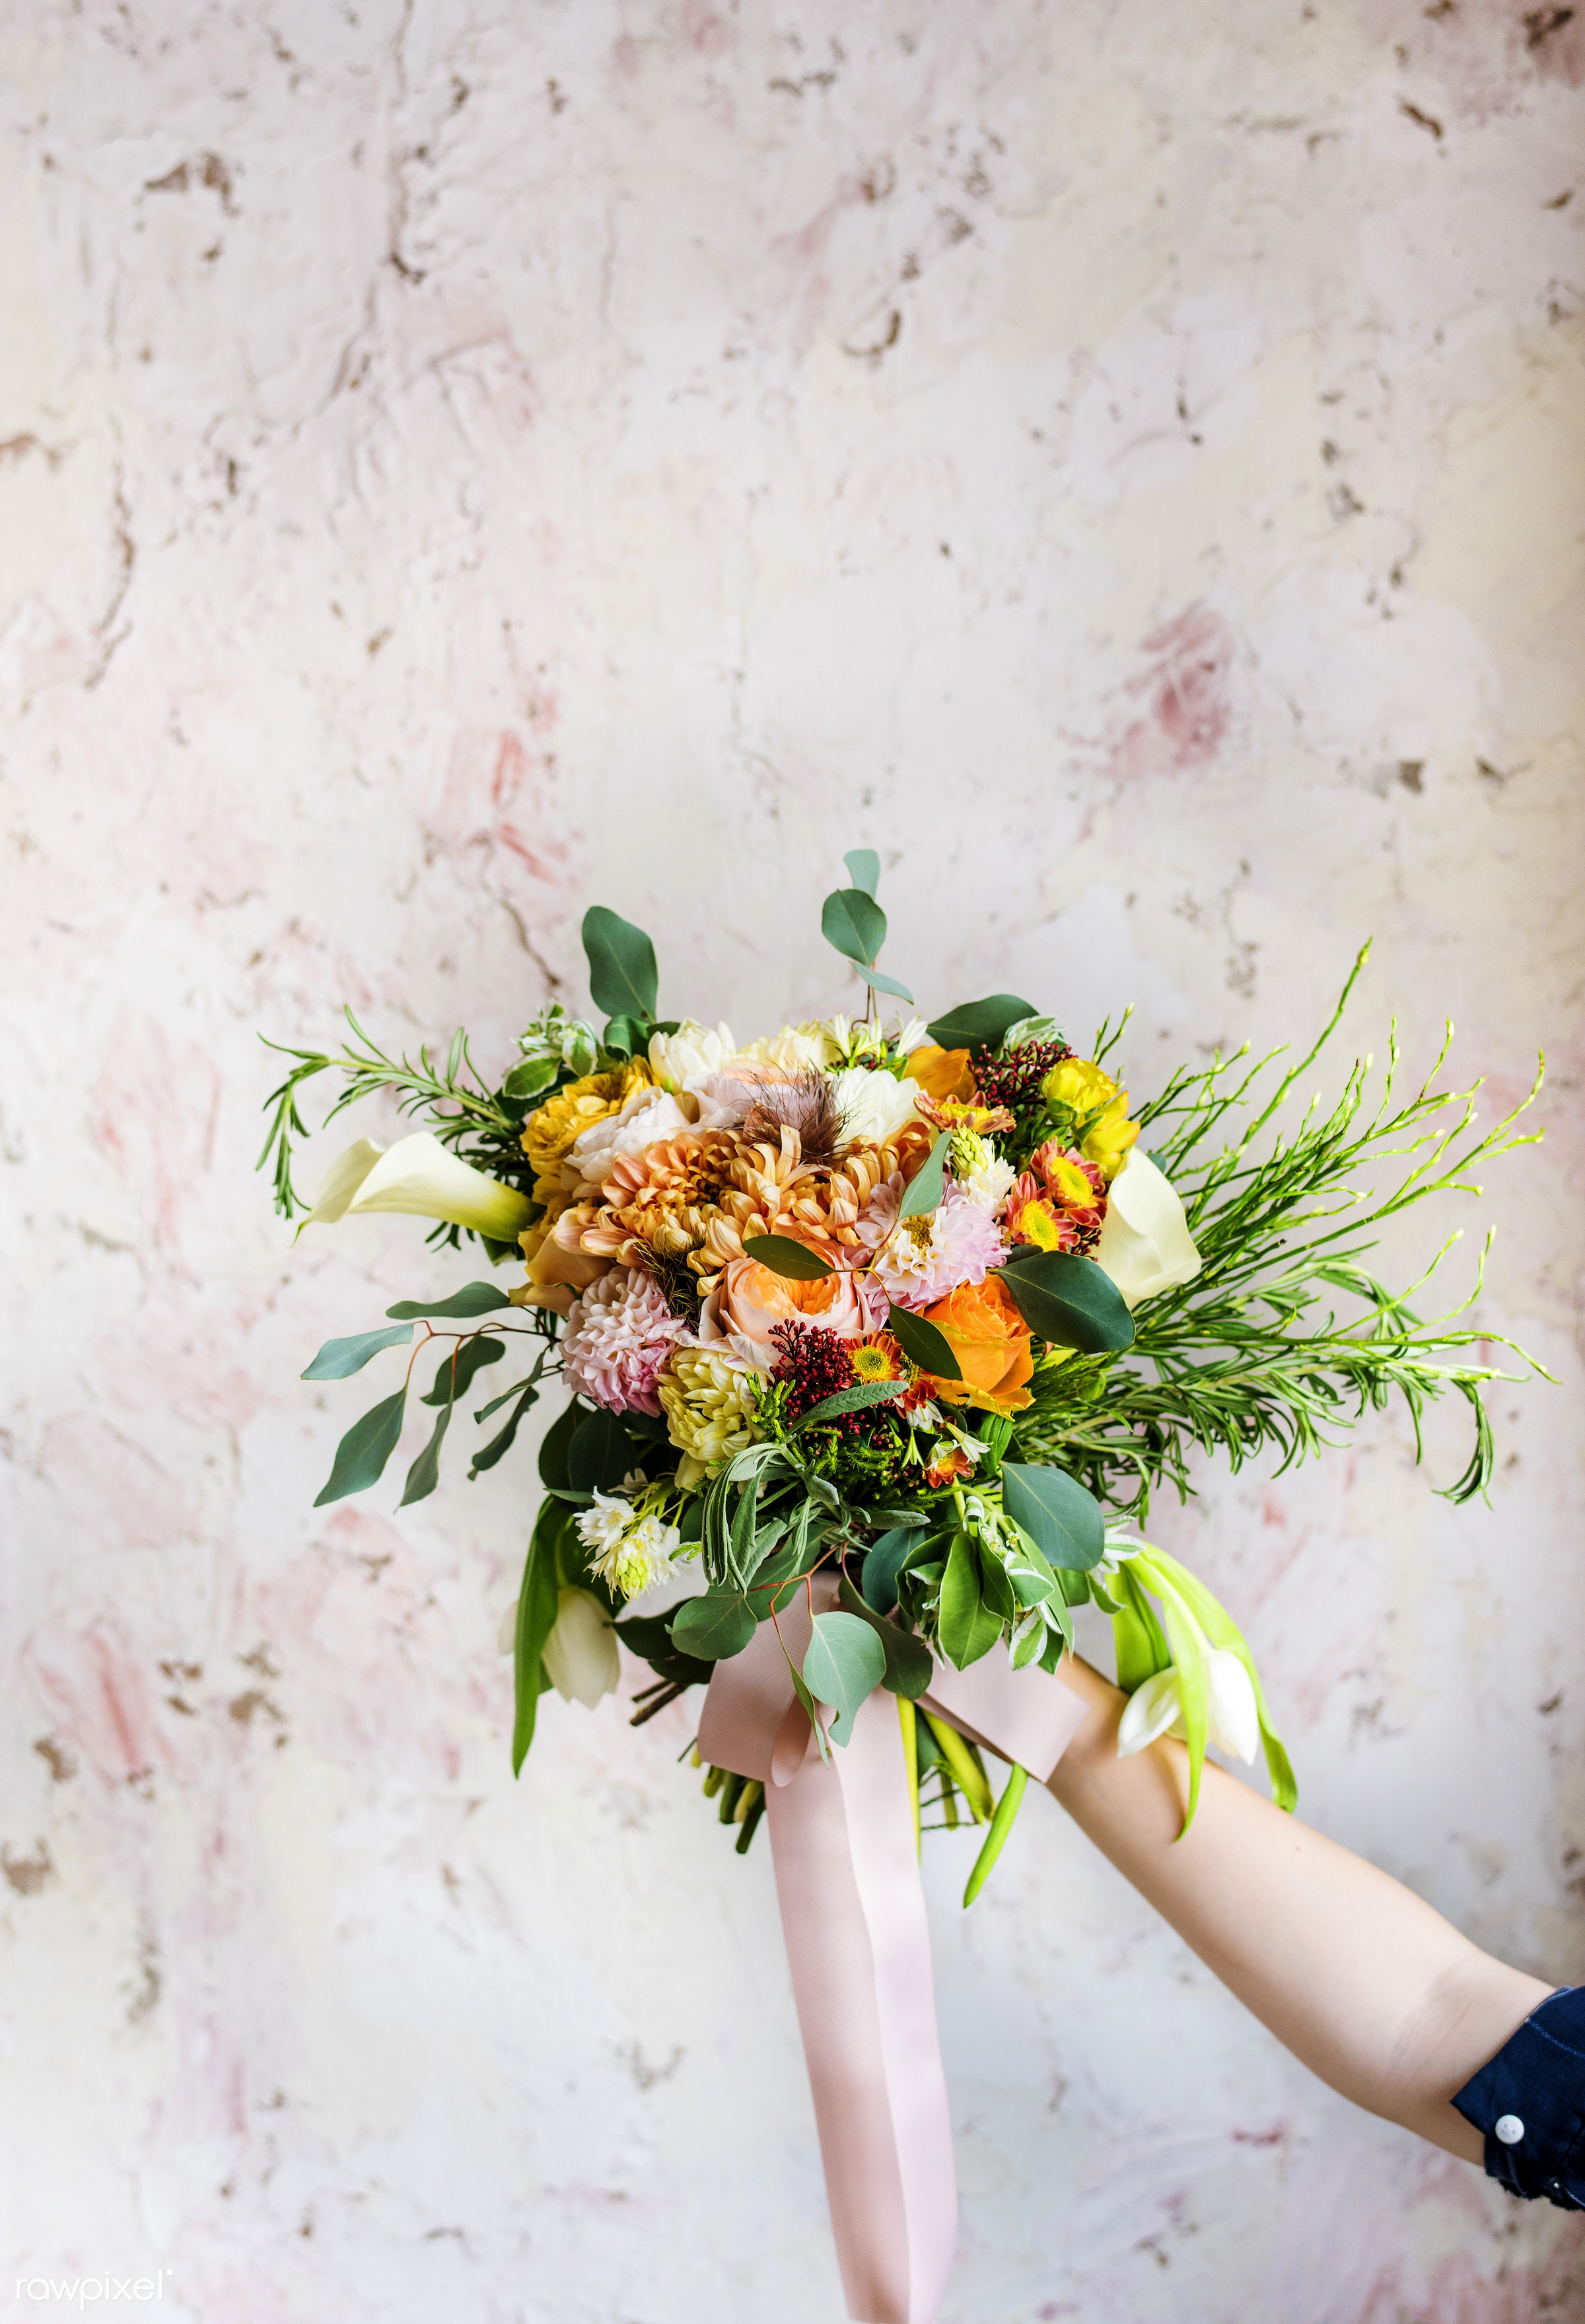 eucalyptus, bouquet, bridal, carnation, ceremony, colorful, diverse, engagement, event, flora, flowers, fresh, hands,...